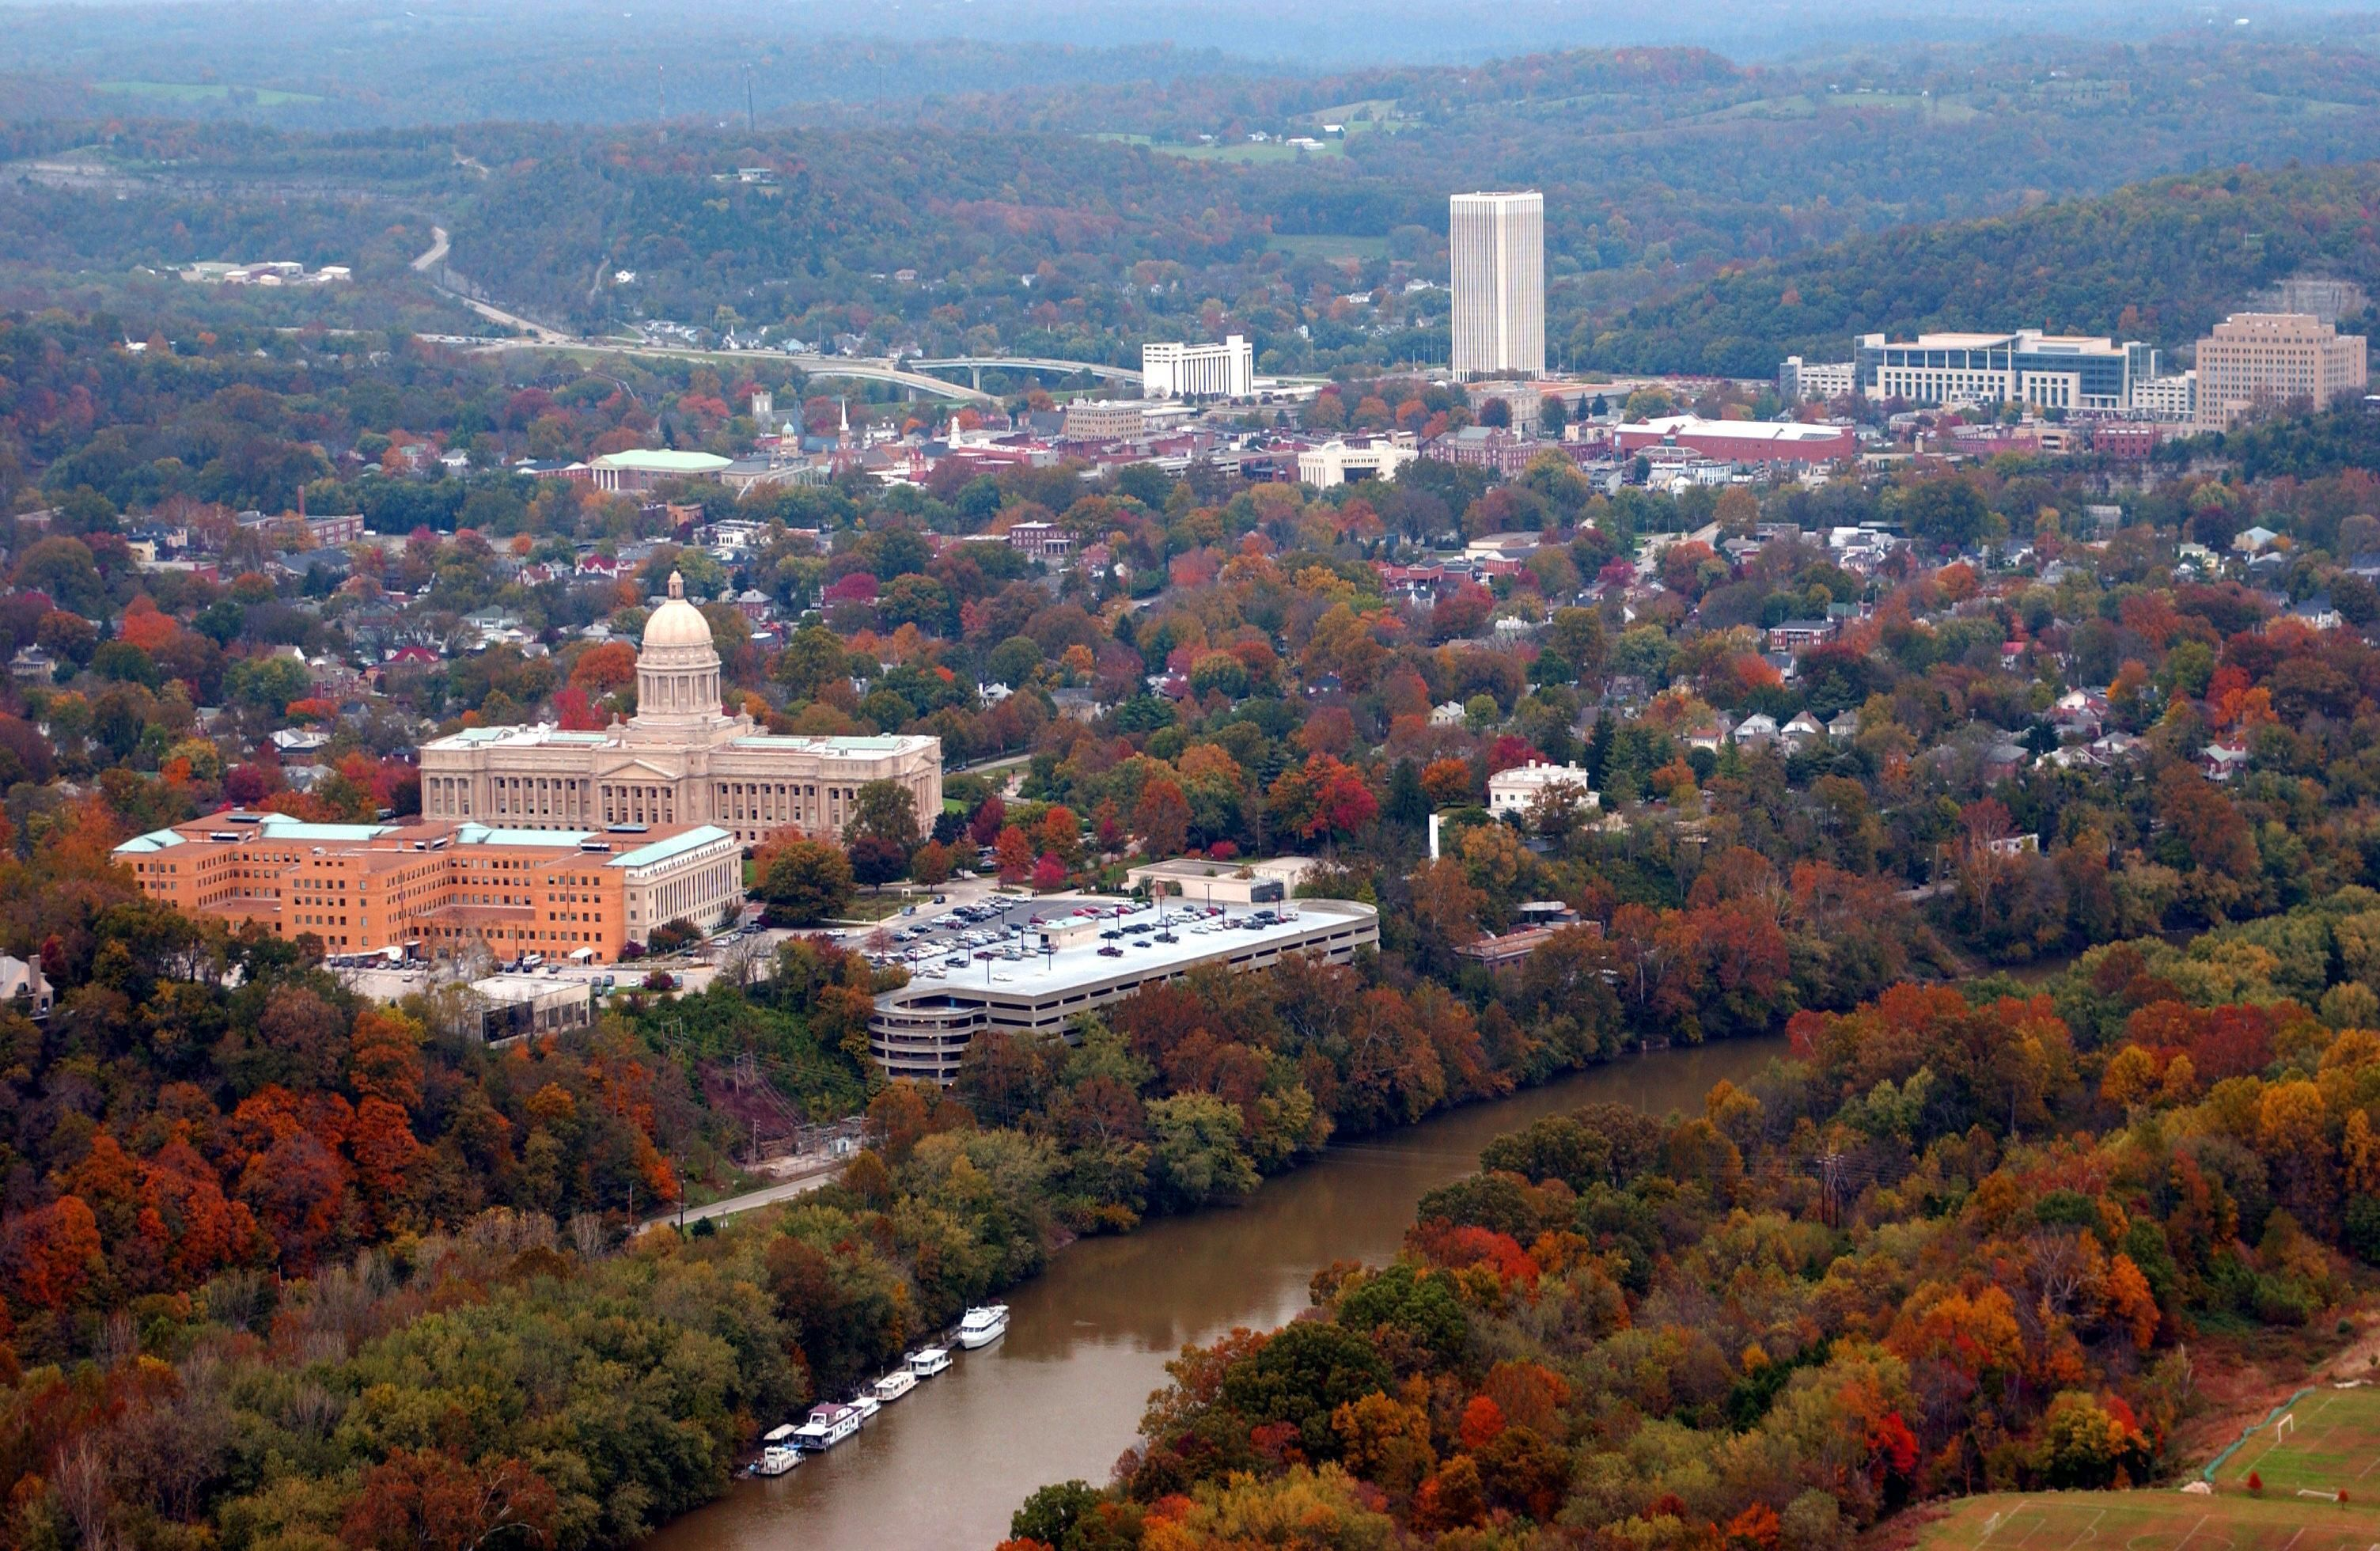 My Gorgeous Hometown Frankfort Ky Frankfort Kentucky Frankfort Kentucky